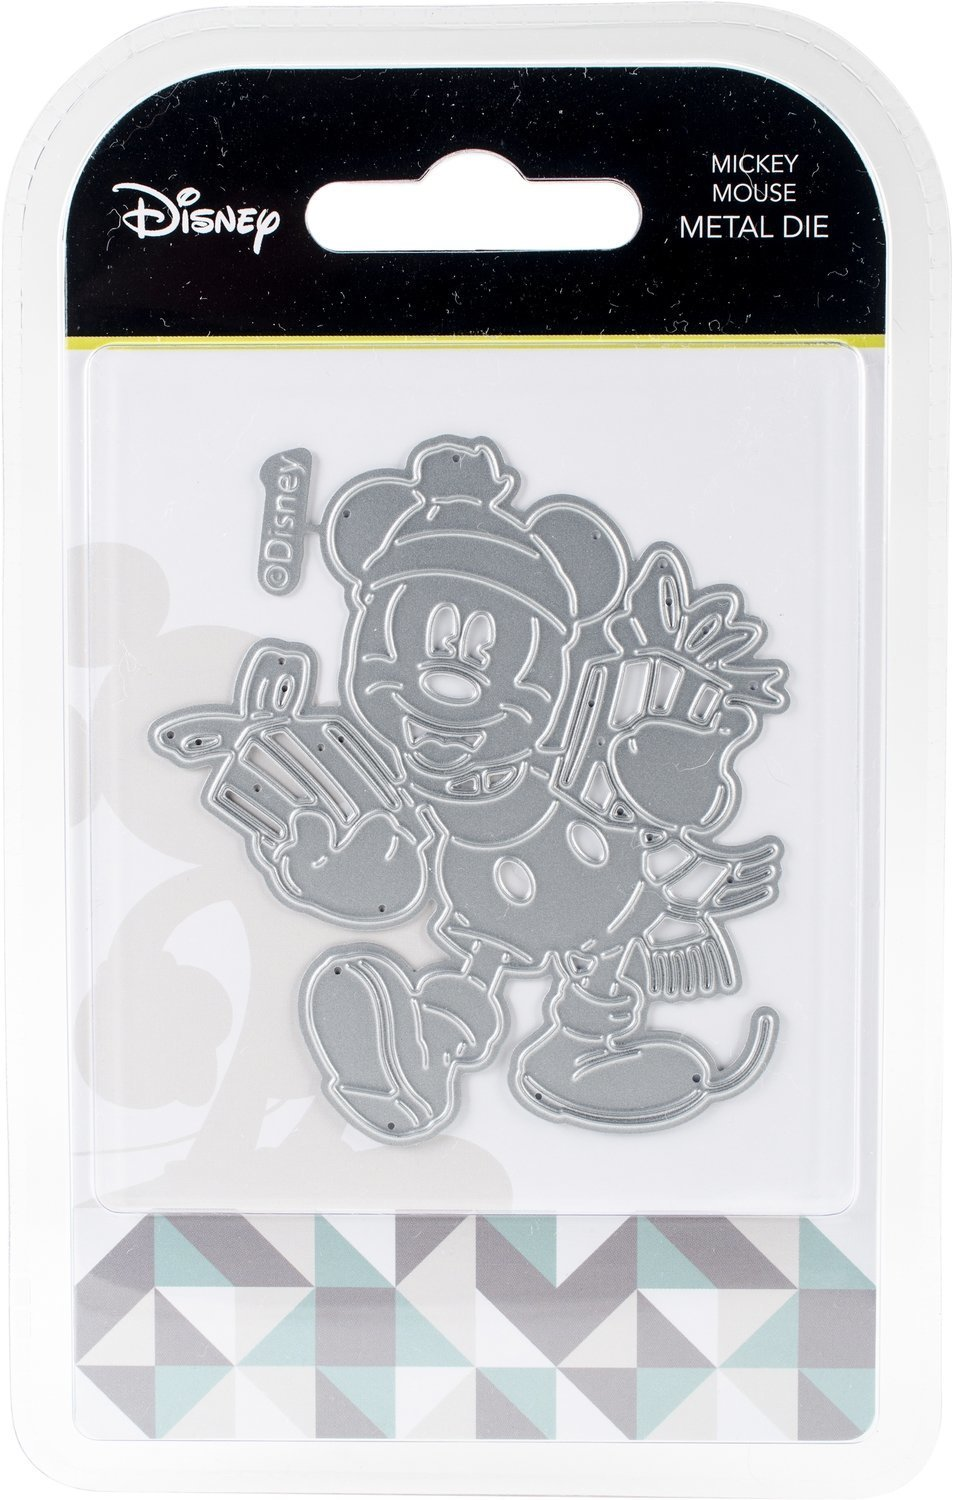 Disney MICKEY MOUSE Mickey & Minnie Mouse Die Set